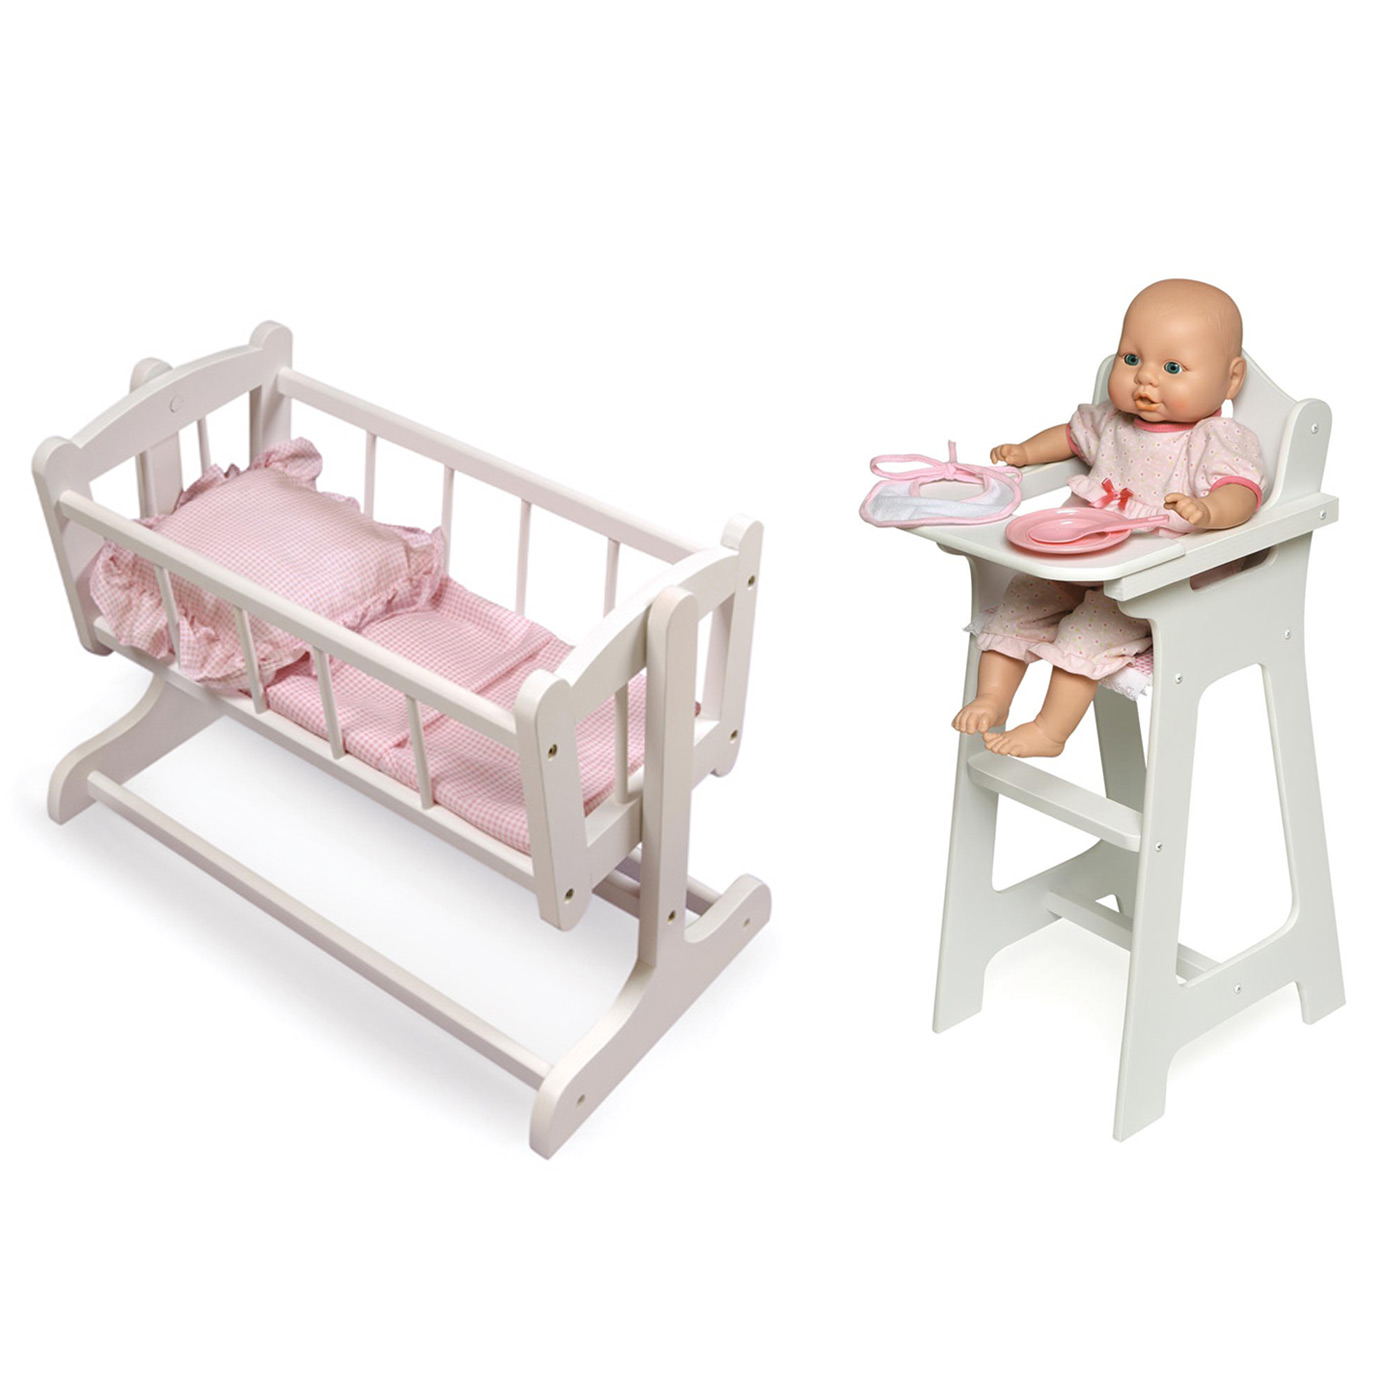 Baby Chairs Argos Badger Basket Heirloom Doll Cradle And Doll High Chair With Plate Bib And Spoon Set